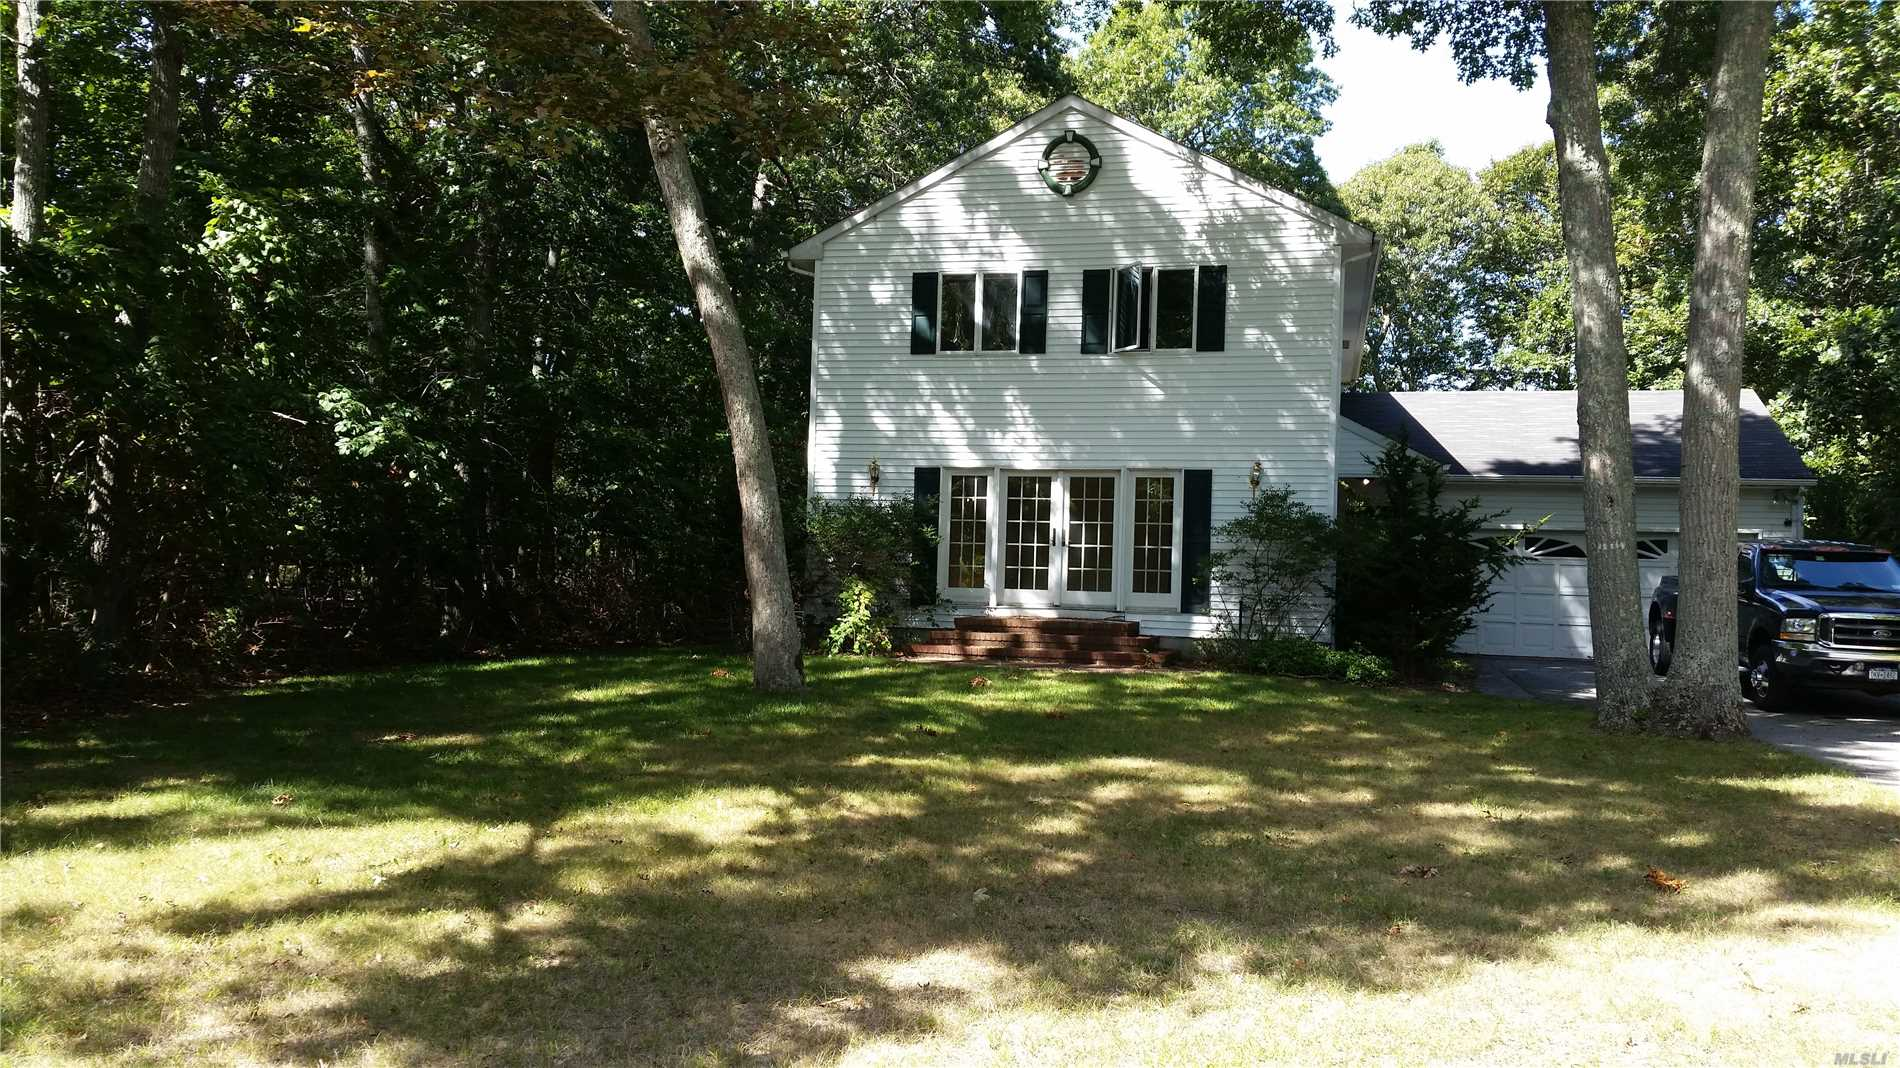 Enjoy Your Summers Or Live Year Round In This Bright, Airy 2 Story Home On A Wooded 1/2 Acre Lot In A Highly Desirable East Marion Community. This Home Has A Fully Outfitted Chef's Kitchen, 4 Bedrooms And 2/1/2 Baths, Formal Dining Room, Living Room, Den, Full Basement And 2 Car Garage. Enjoy Beautiful Sunsets When You Walk To Your Private Deeded Sound Beach. A Must See!!